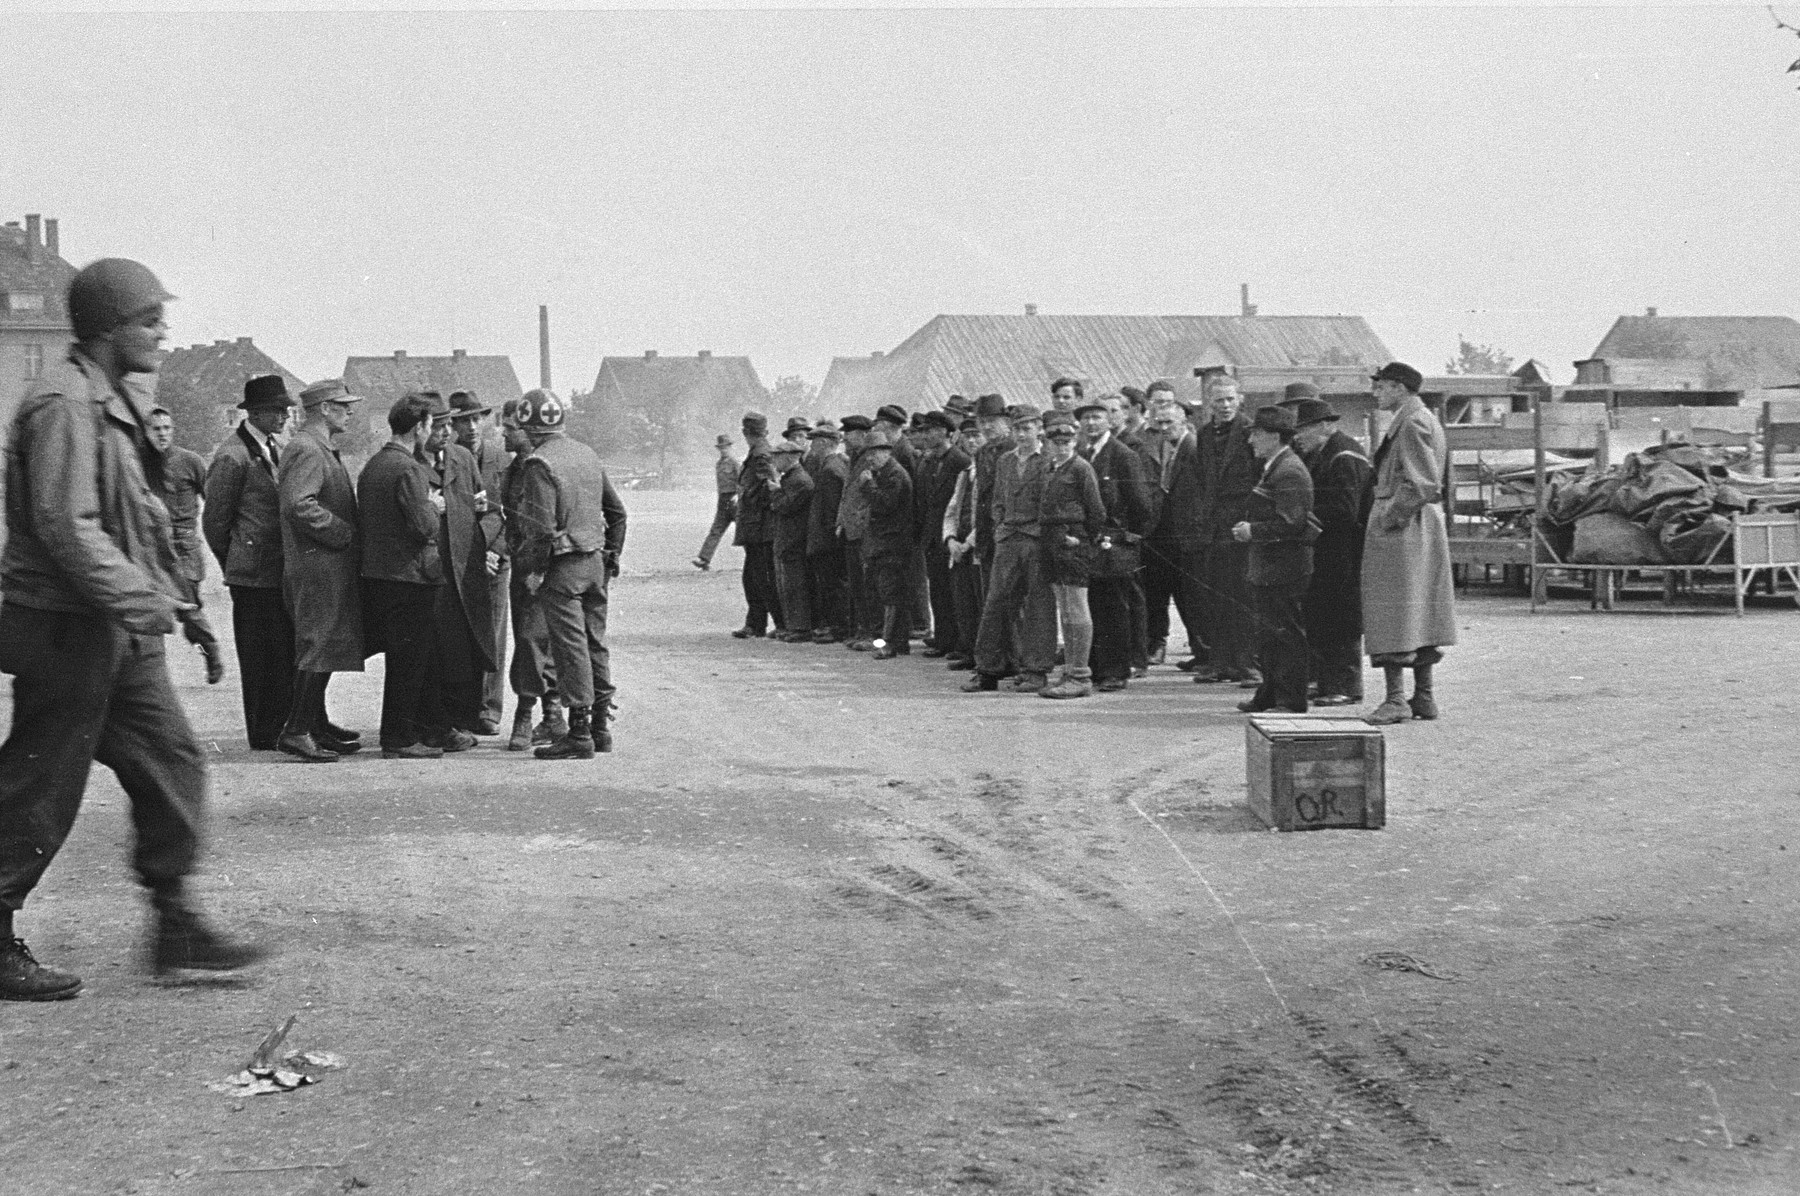 German civilians are assembled before being detailed to collect and bury the victims of the Langenstein-Zwieberge concentration camp.